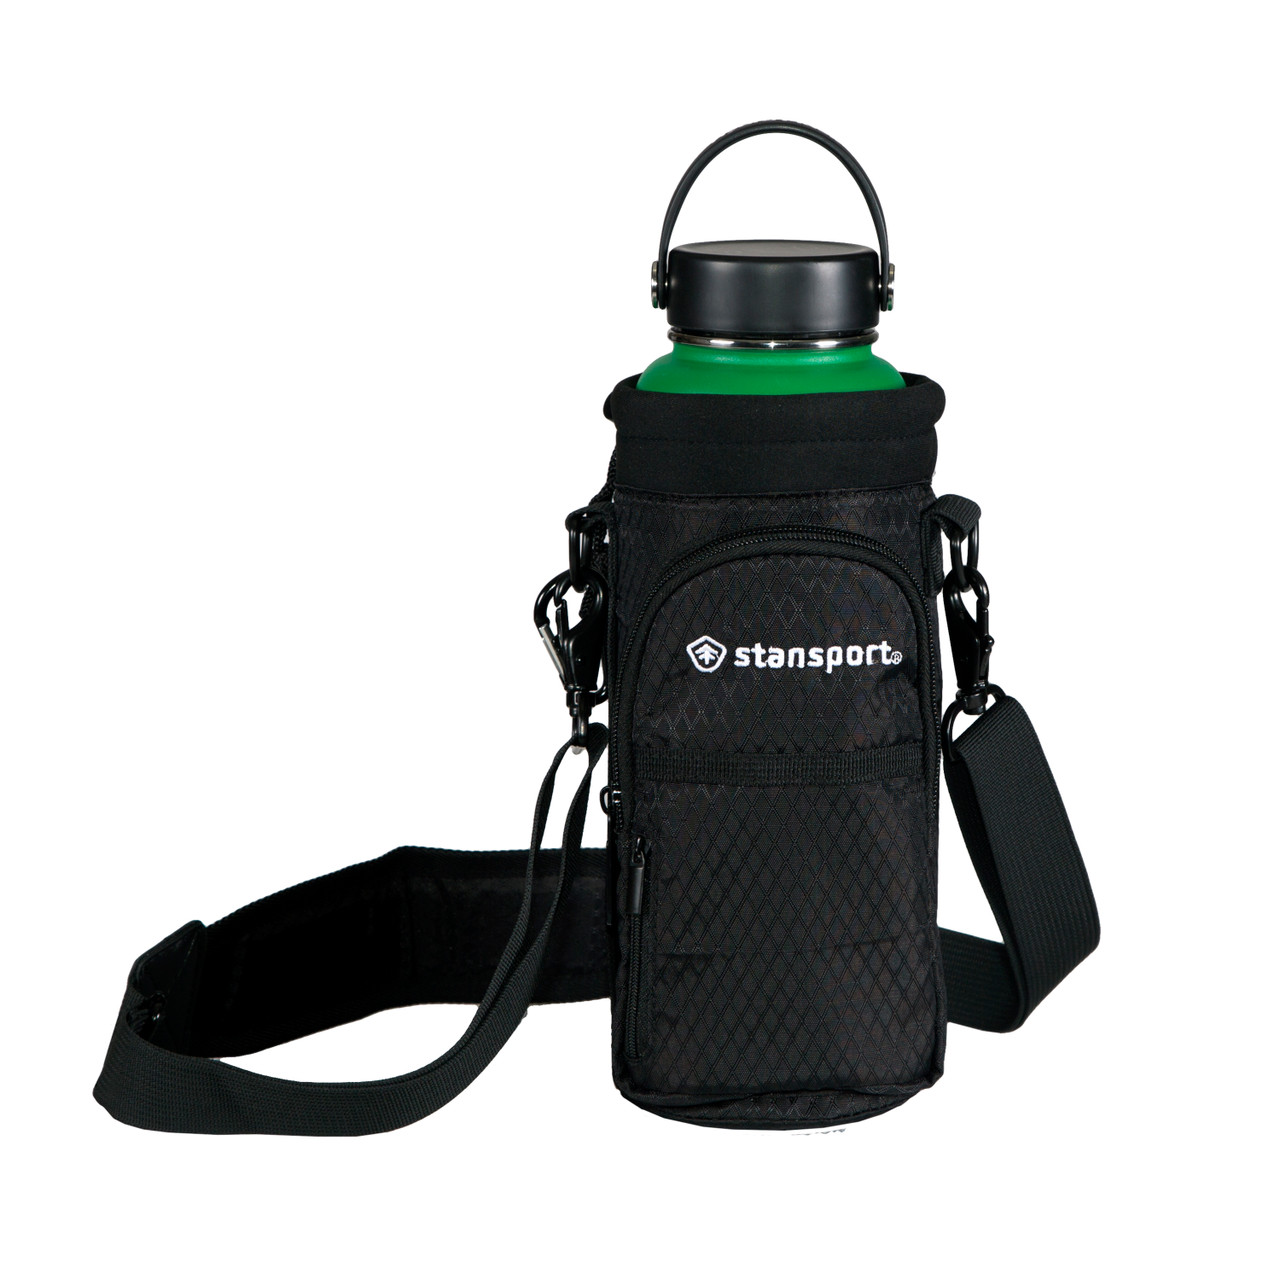 Stansport® INSULATED BOTTLE CARRIER - 32OZ + 40OZ